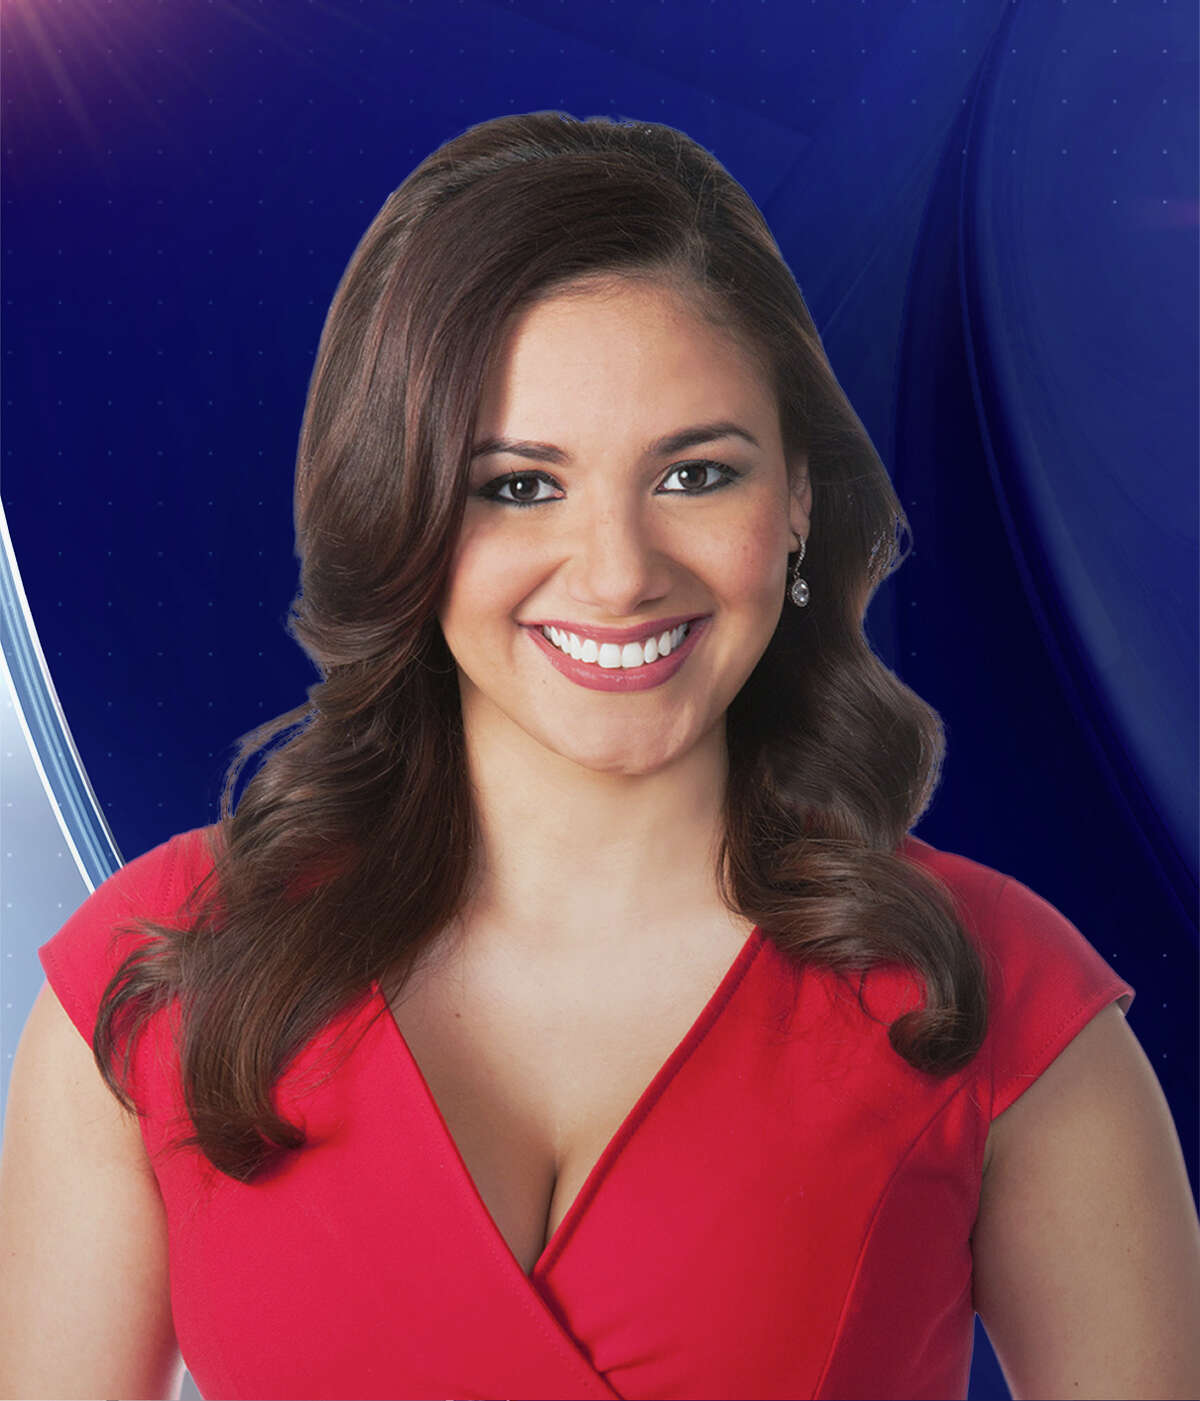 Marja Martinez joined Houston's KTMD-TV as a weather anchor in October 2014.